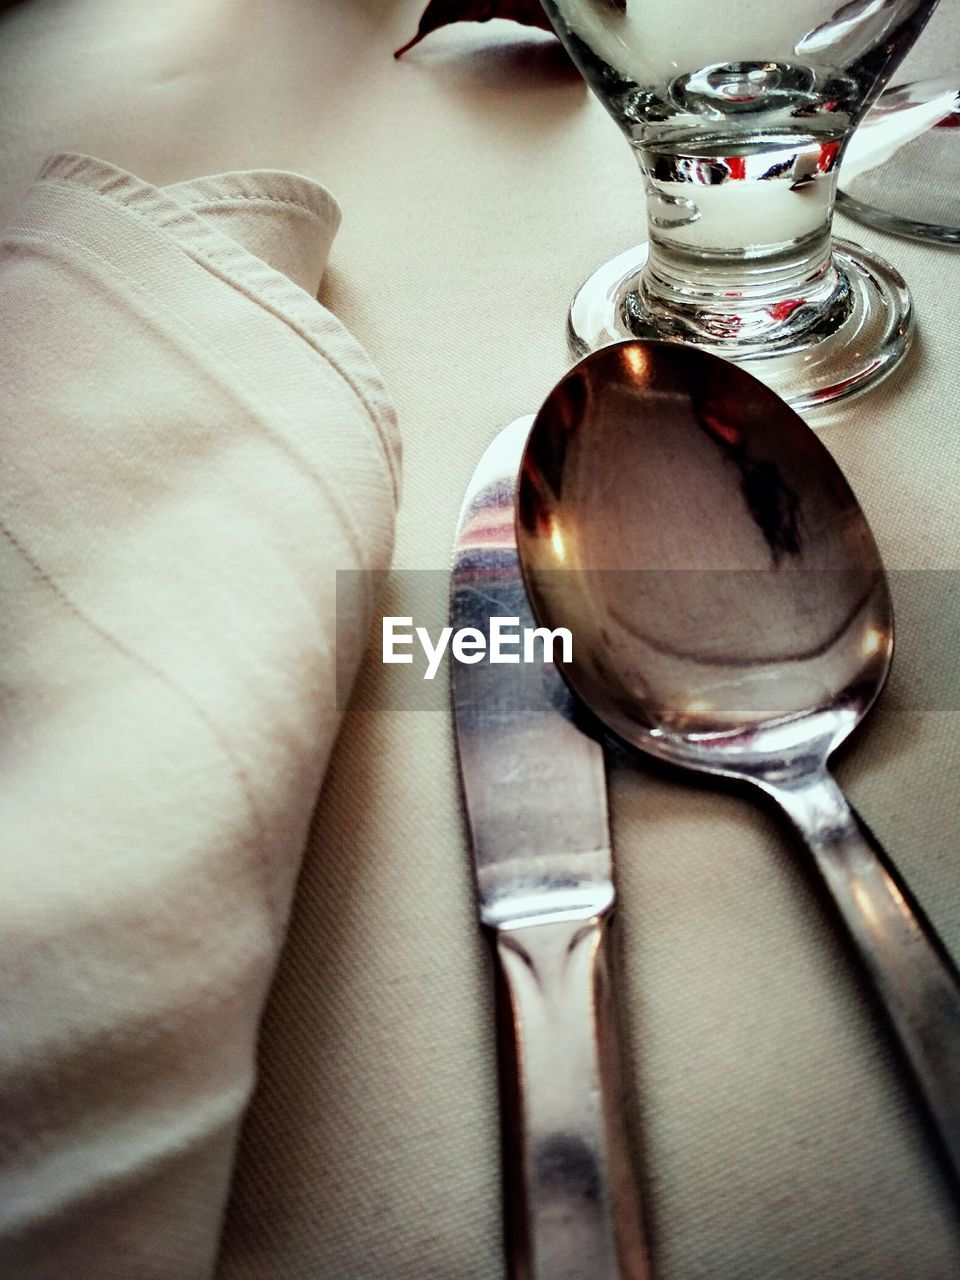 indoors, table, food and drink, one person, close-up, real people, low section, food, freshness, day, people